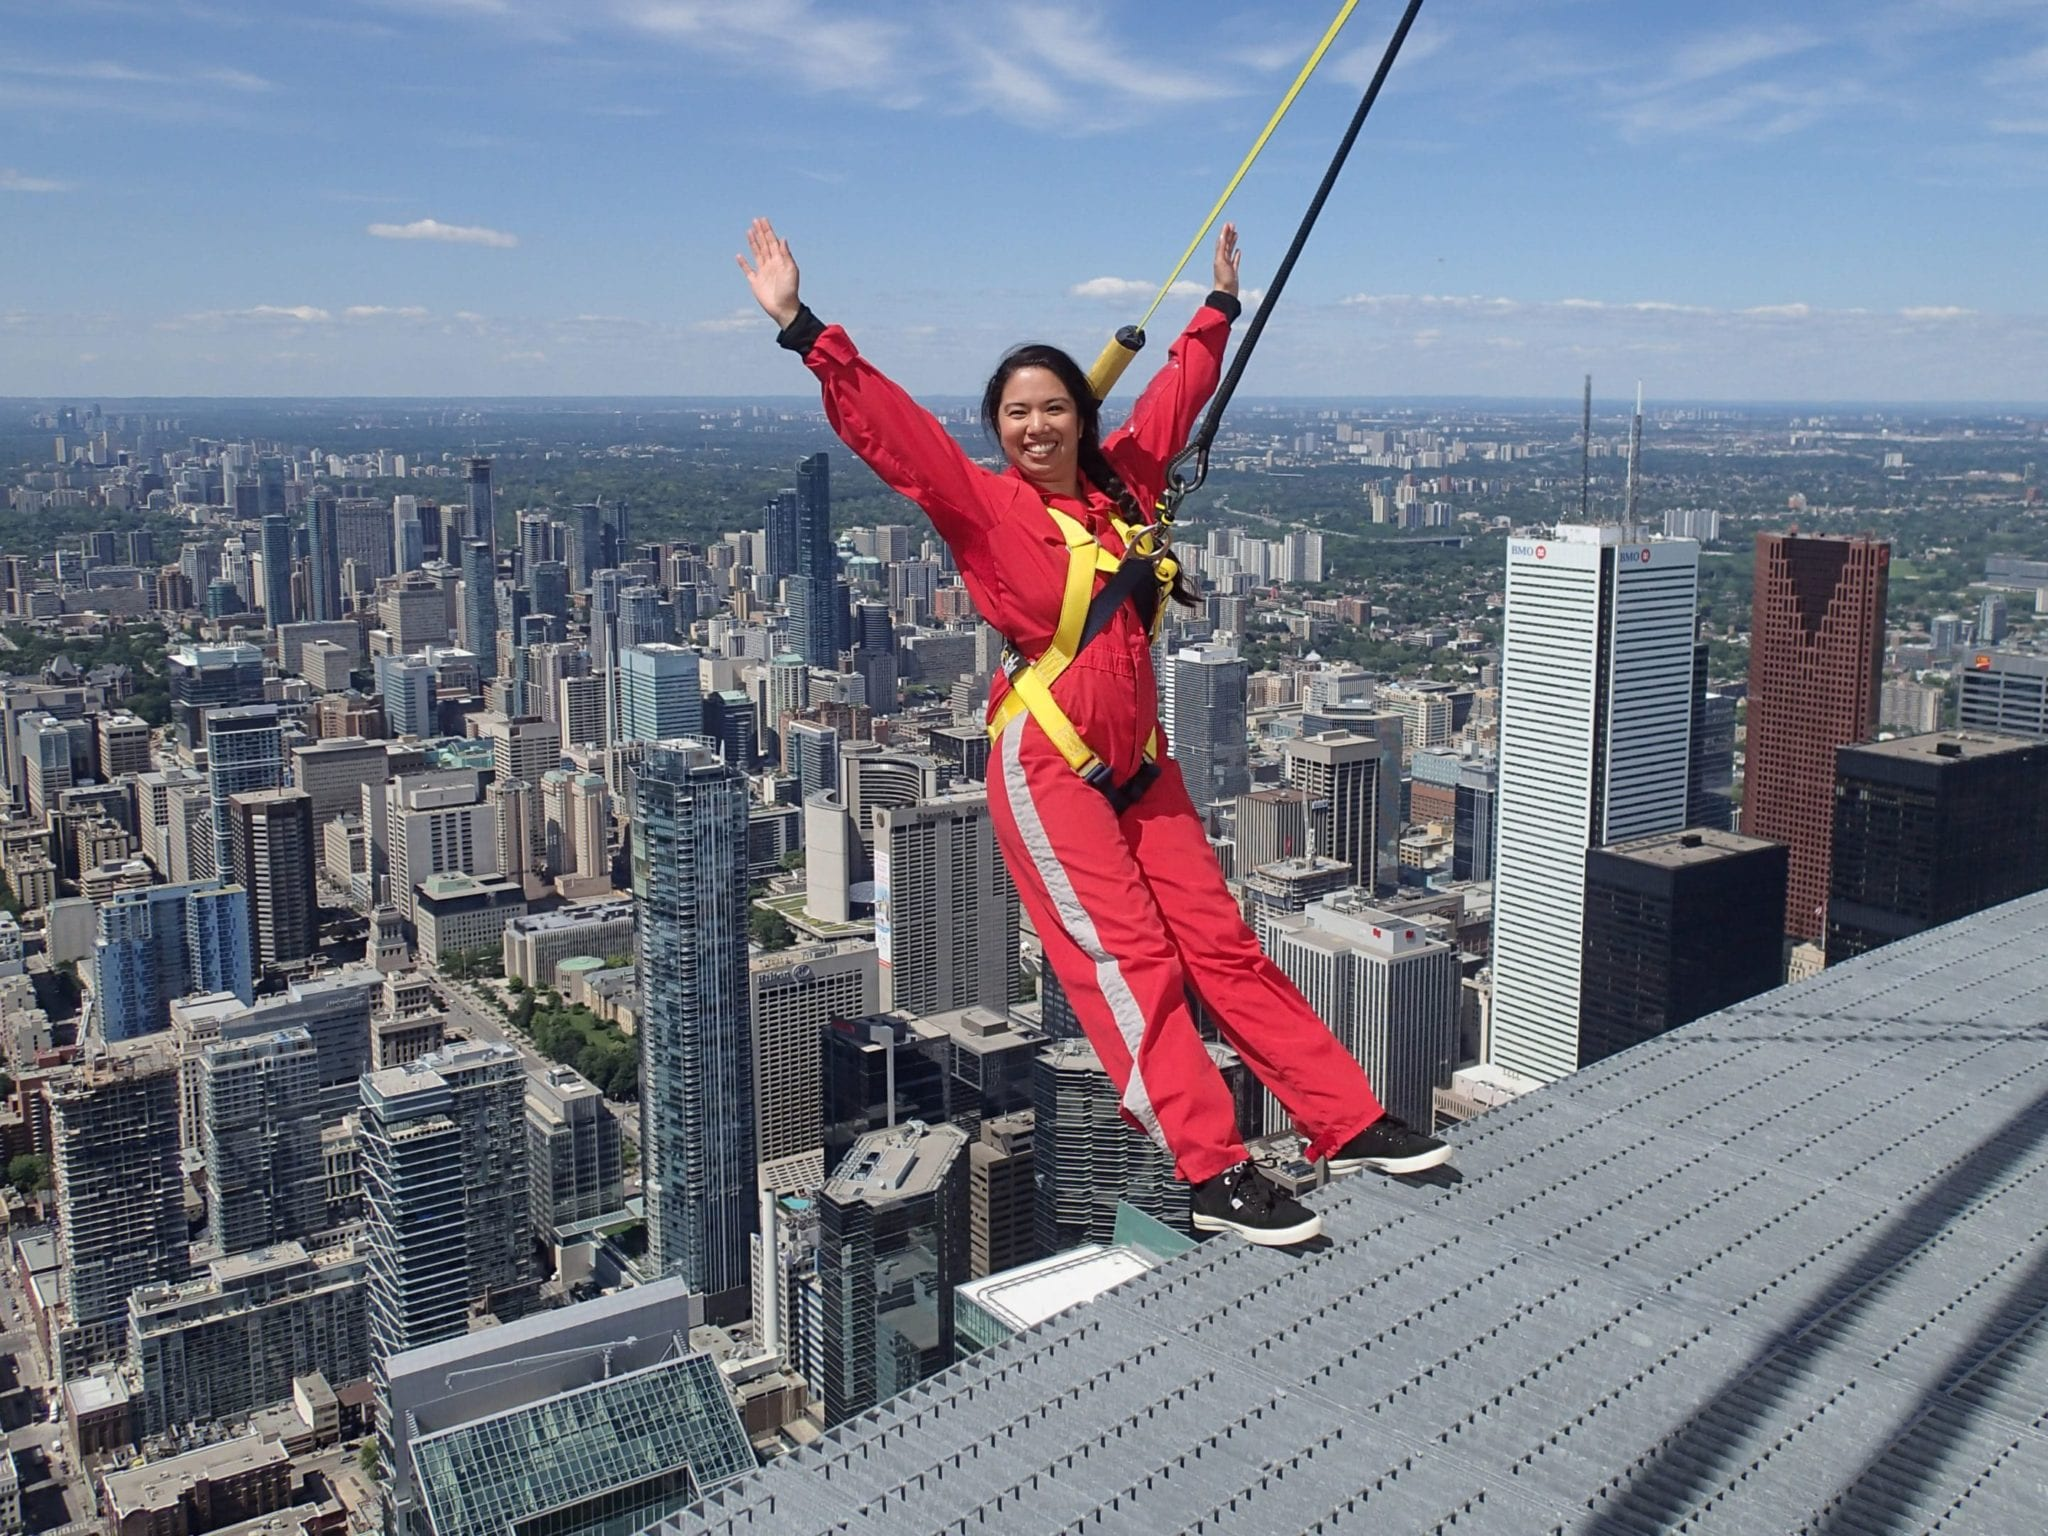 Joanne Hyatt does the Edgewalk